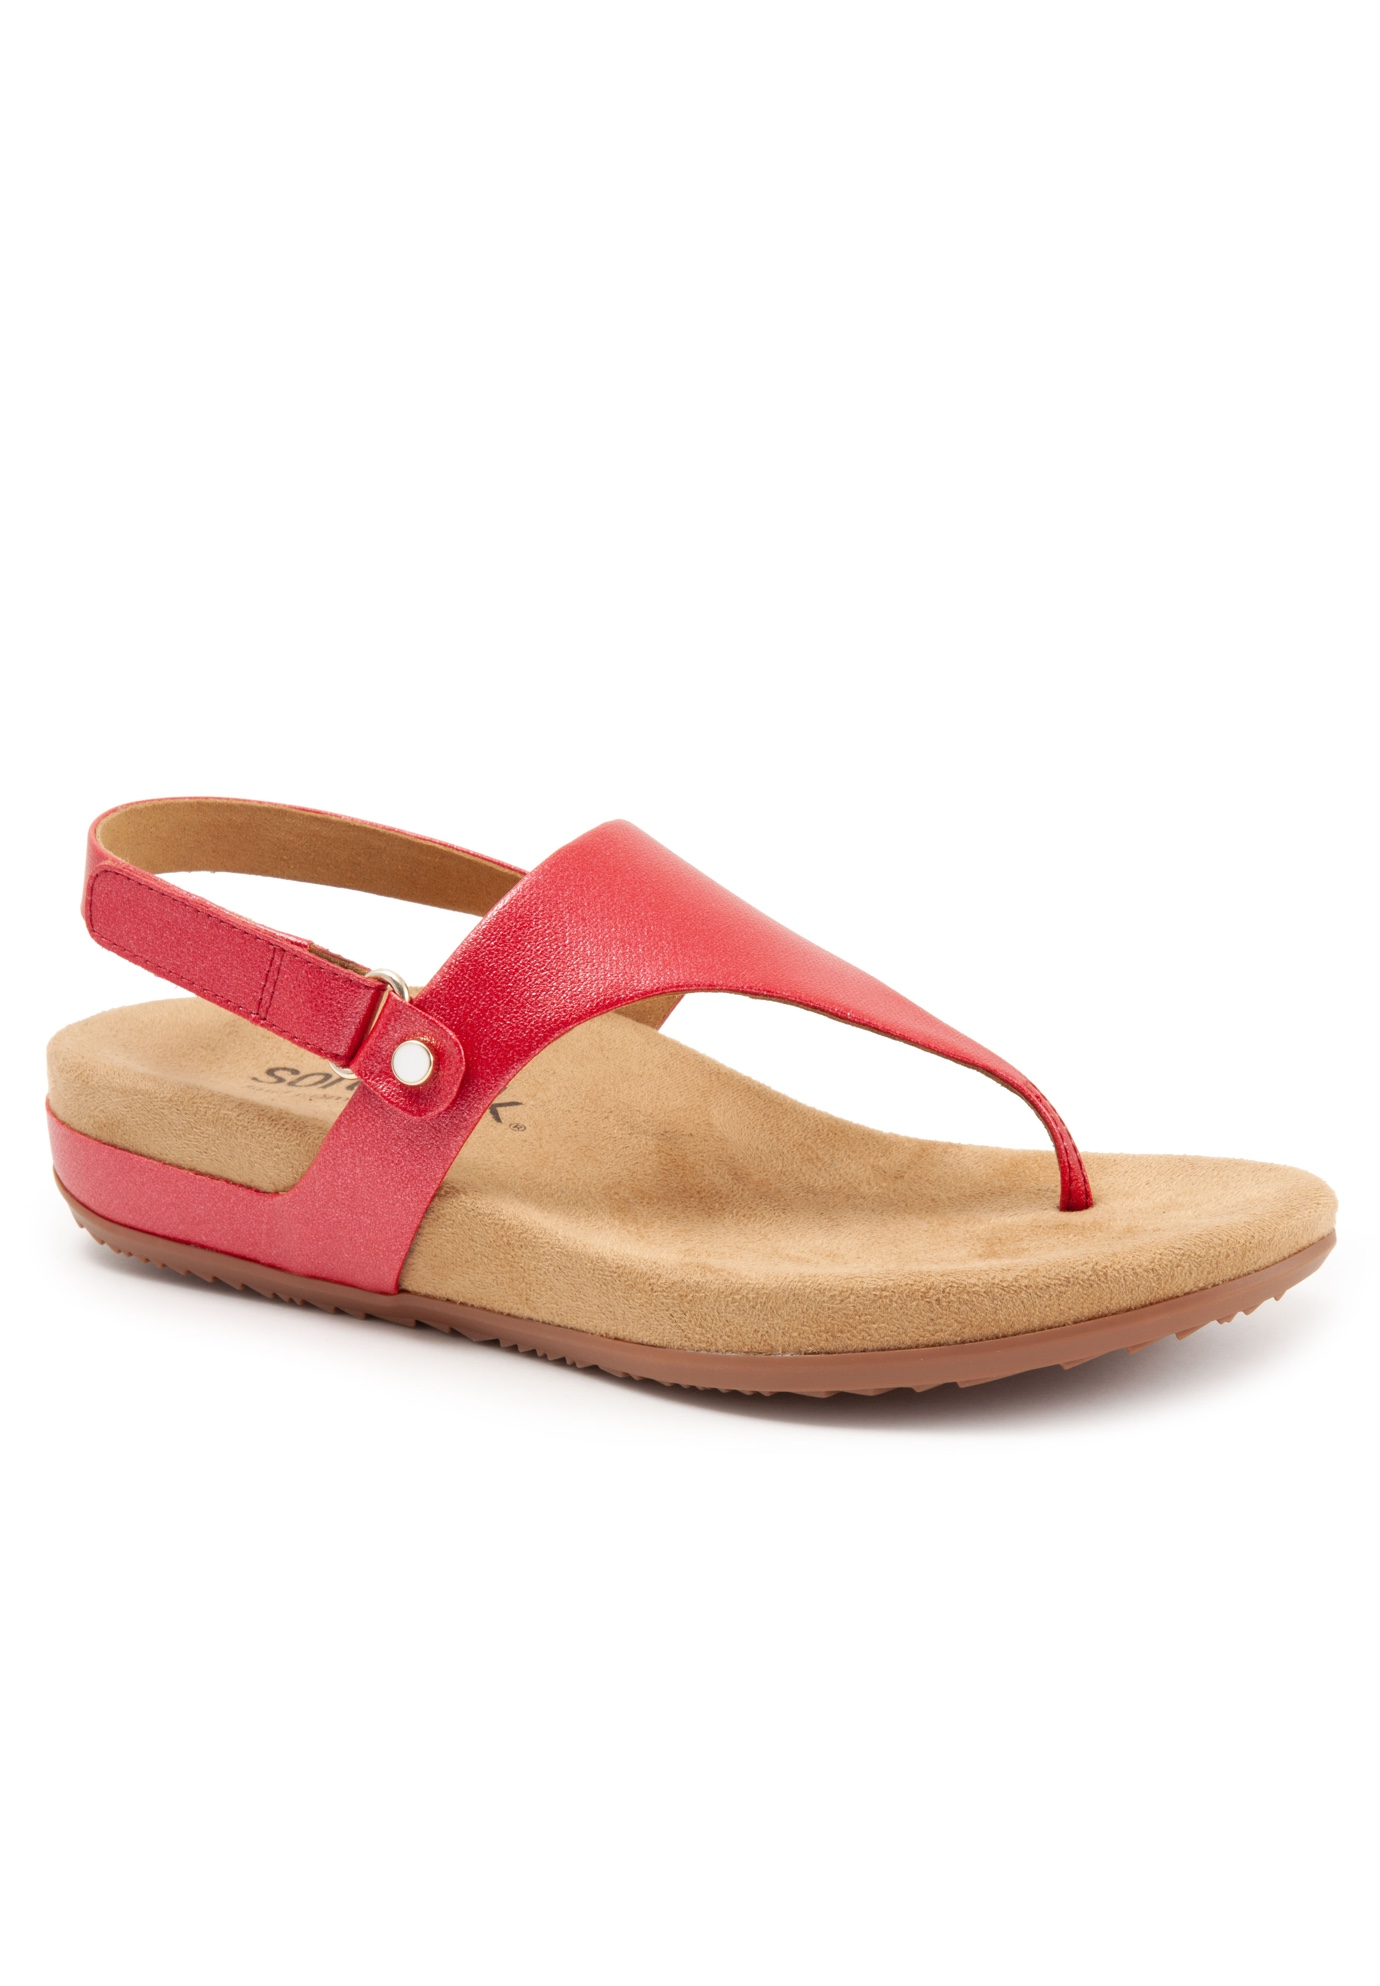 Bolinas Sandal by Softwalk®,